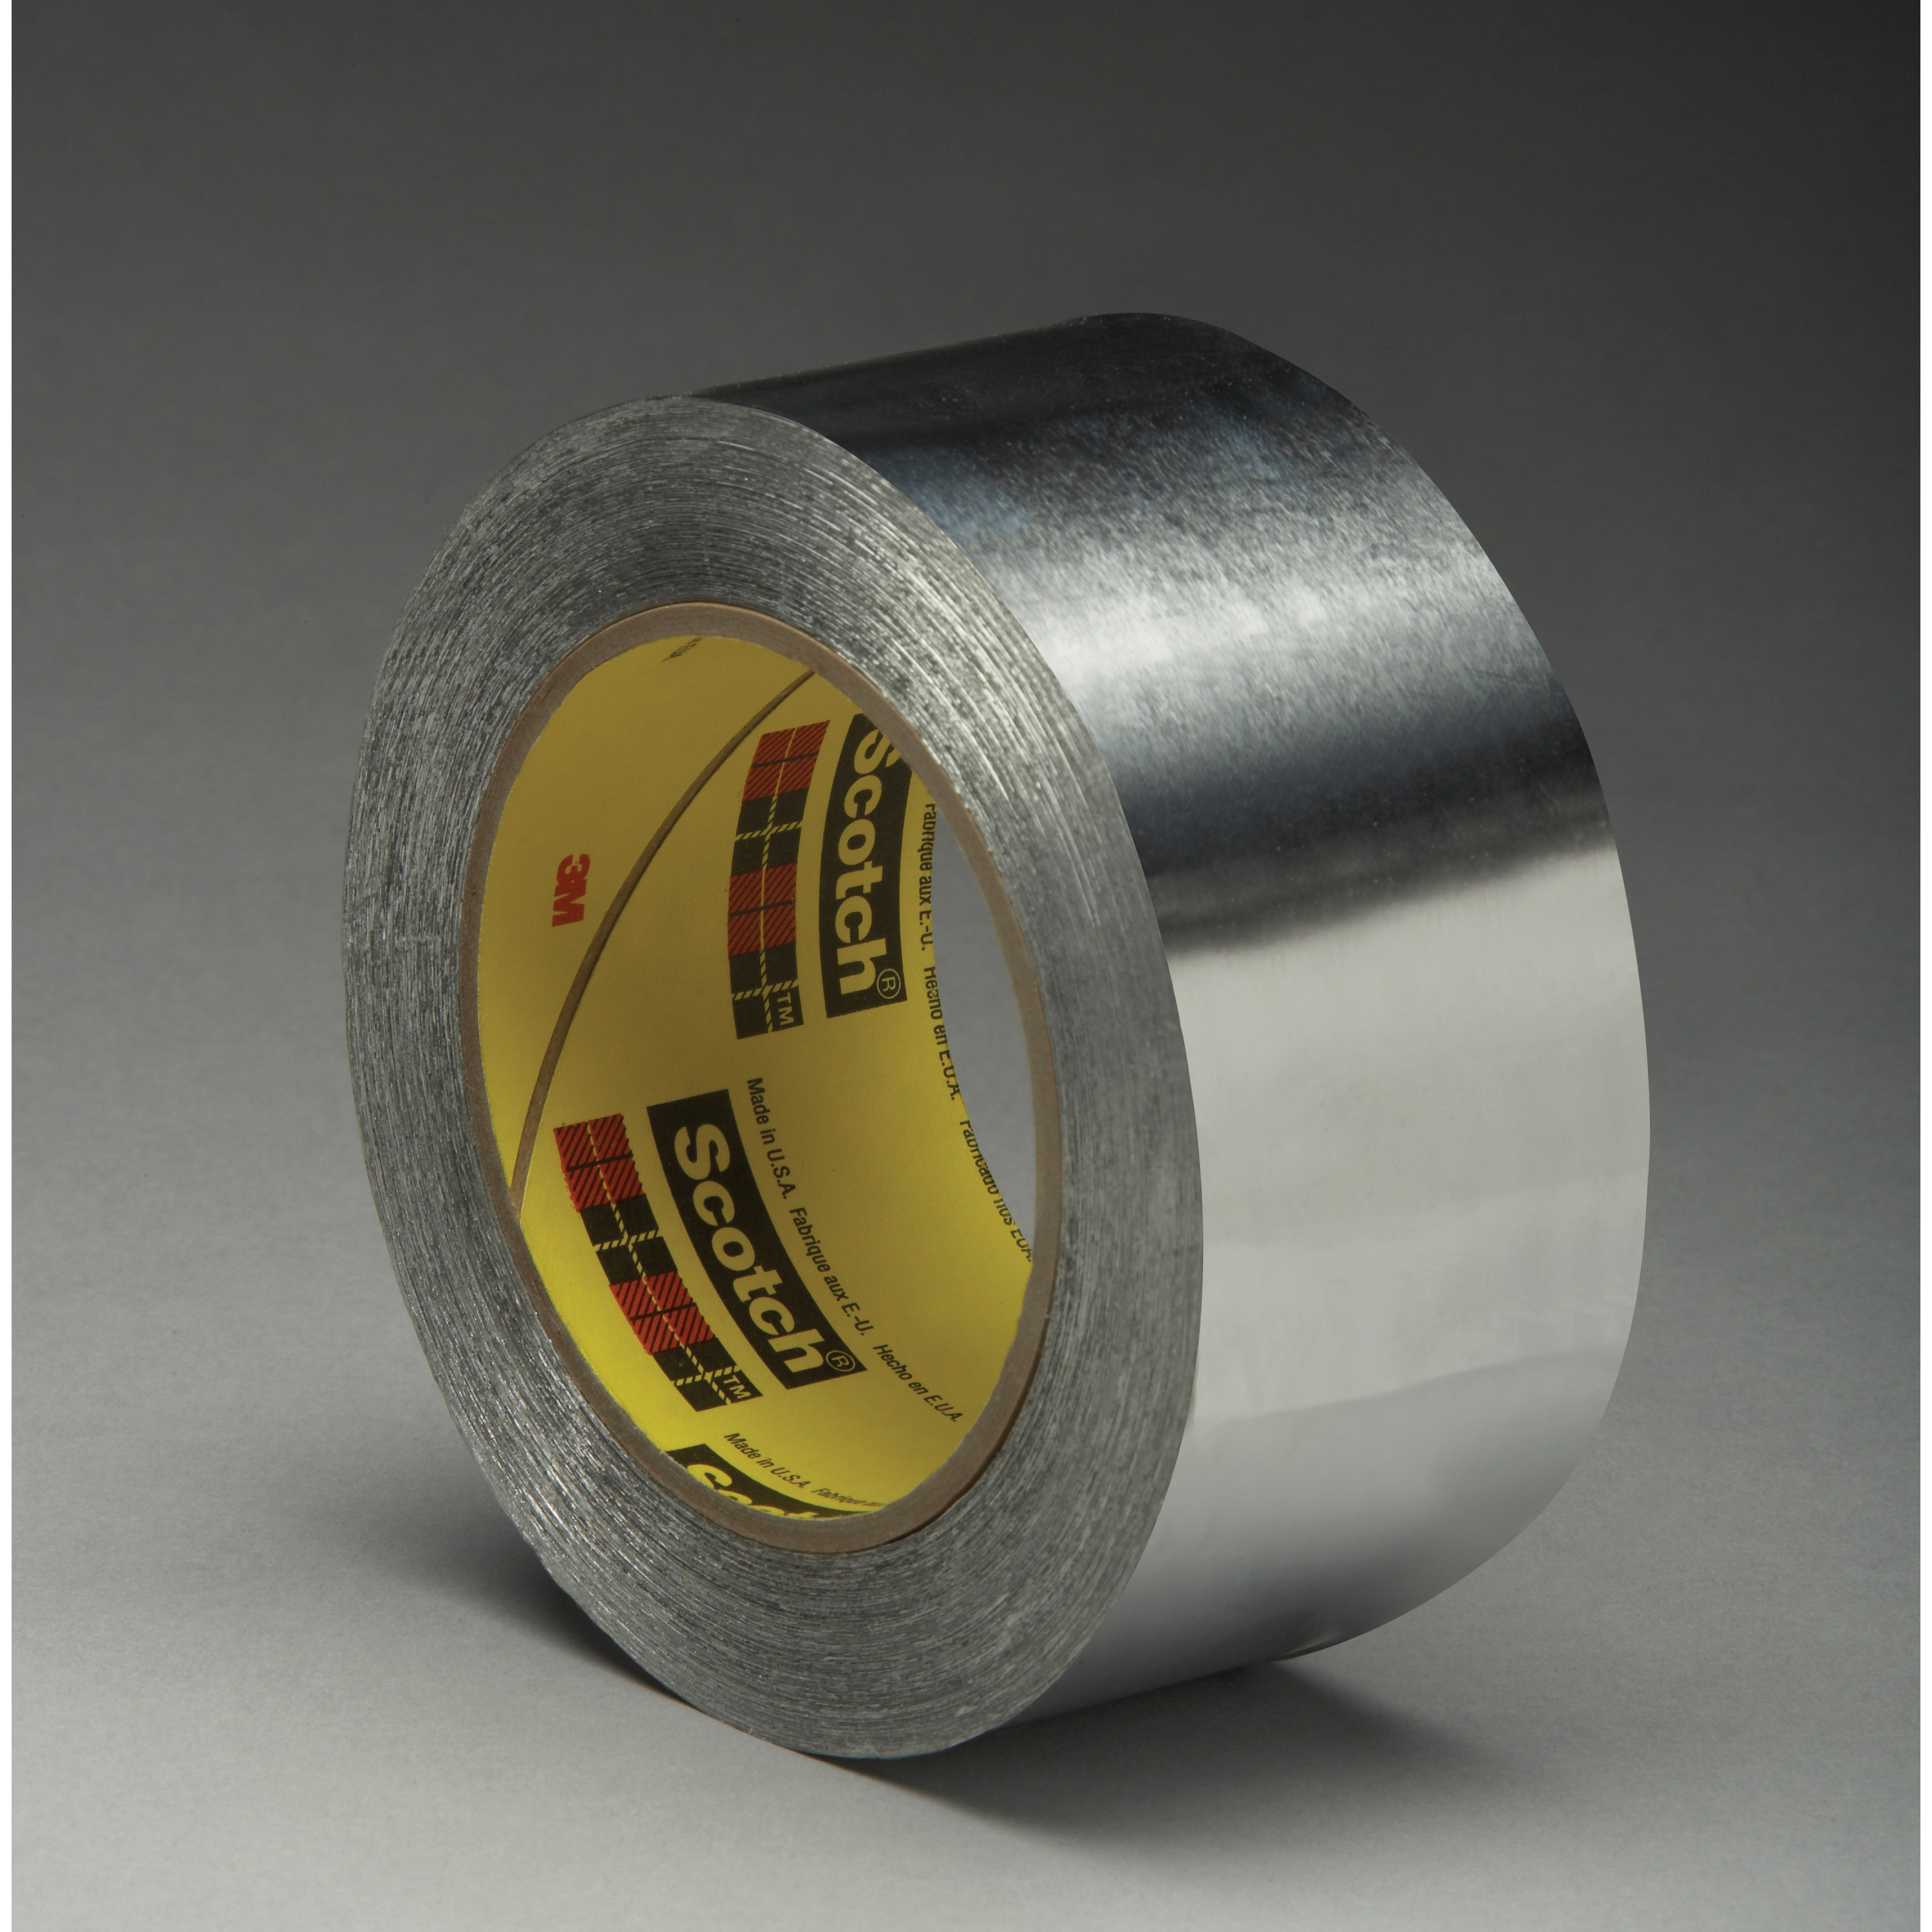 3M™ 021200-03897 Premium Performance Self-Wound Foil Tape, 60 yd L x 3/4 in W, 3.6 mil THK, Easy Release Film Liner, Silicon Adhesive, Aluminum Foil Backing, Silver